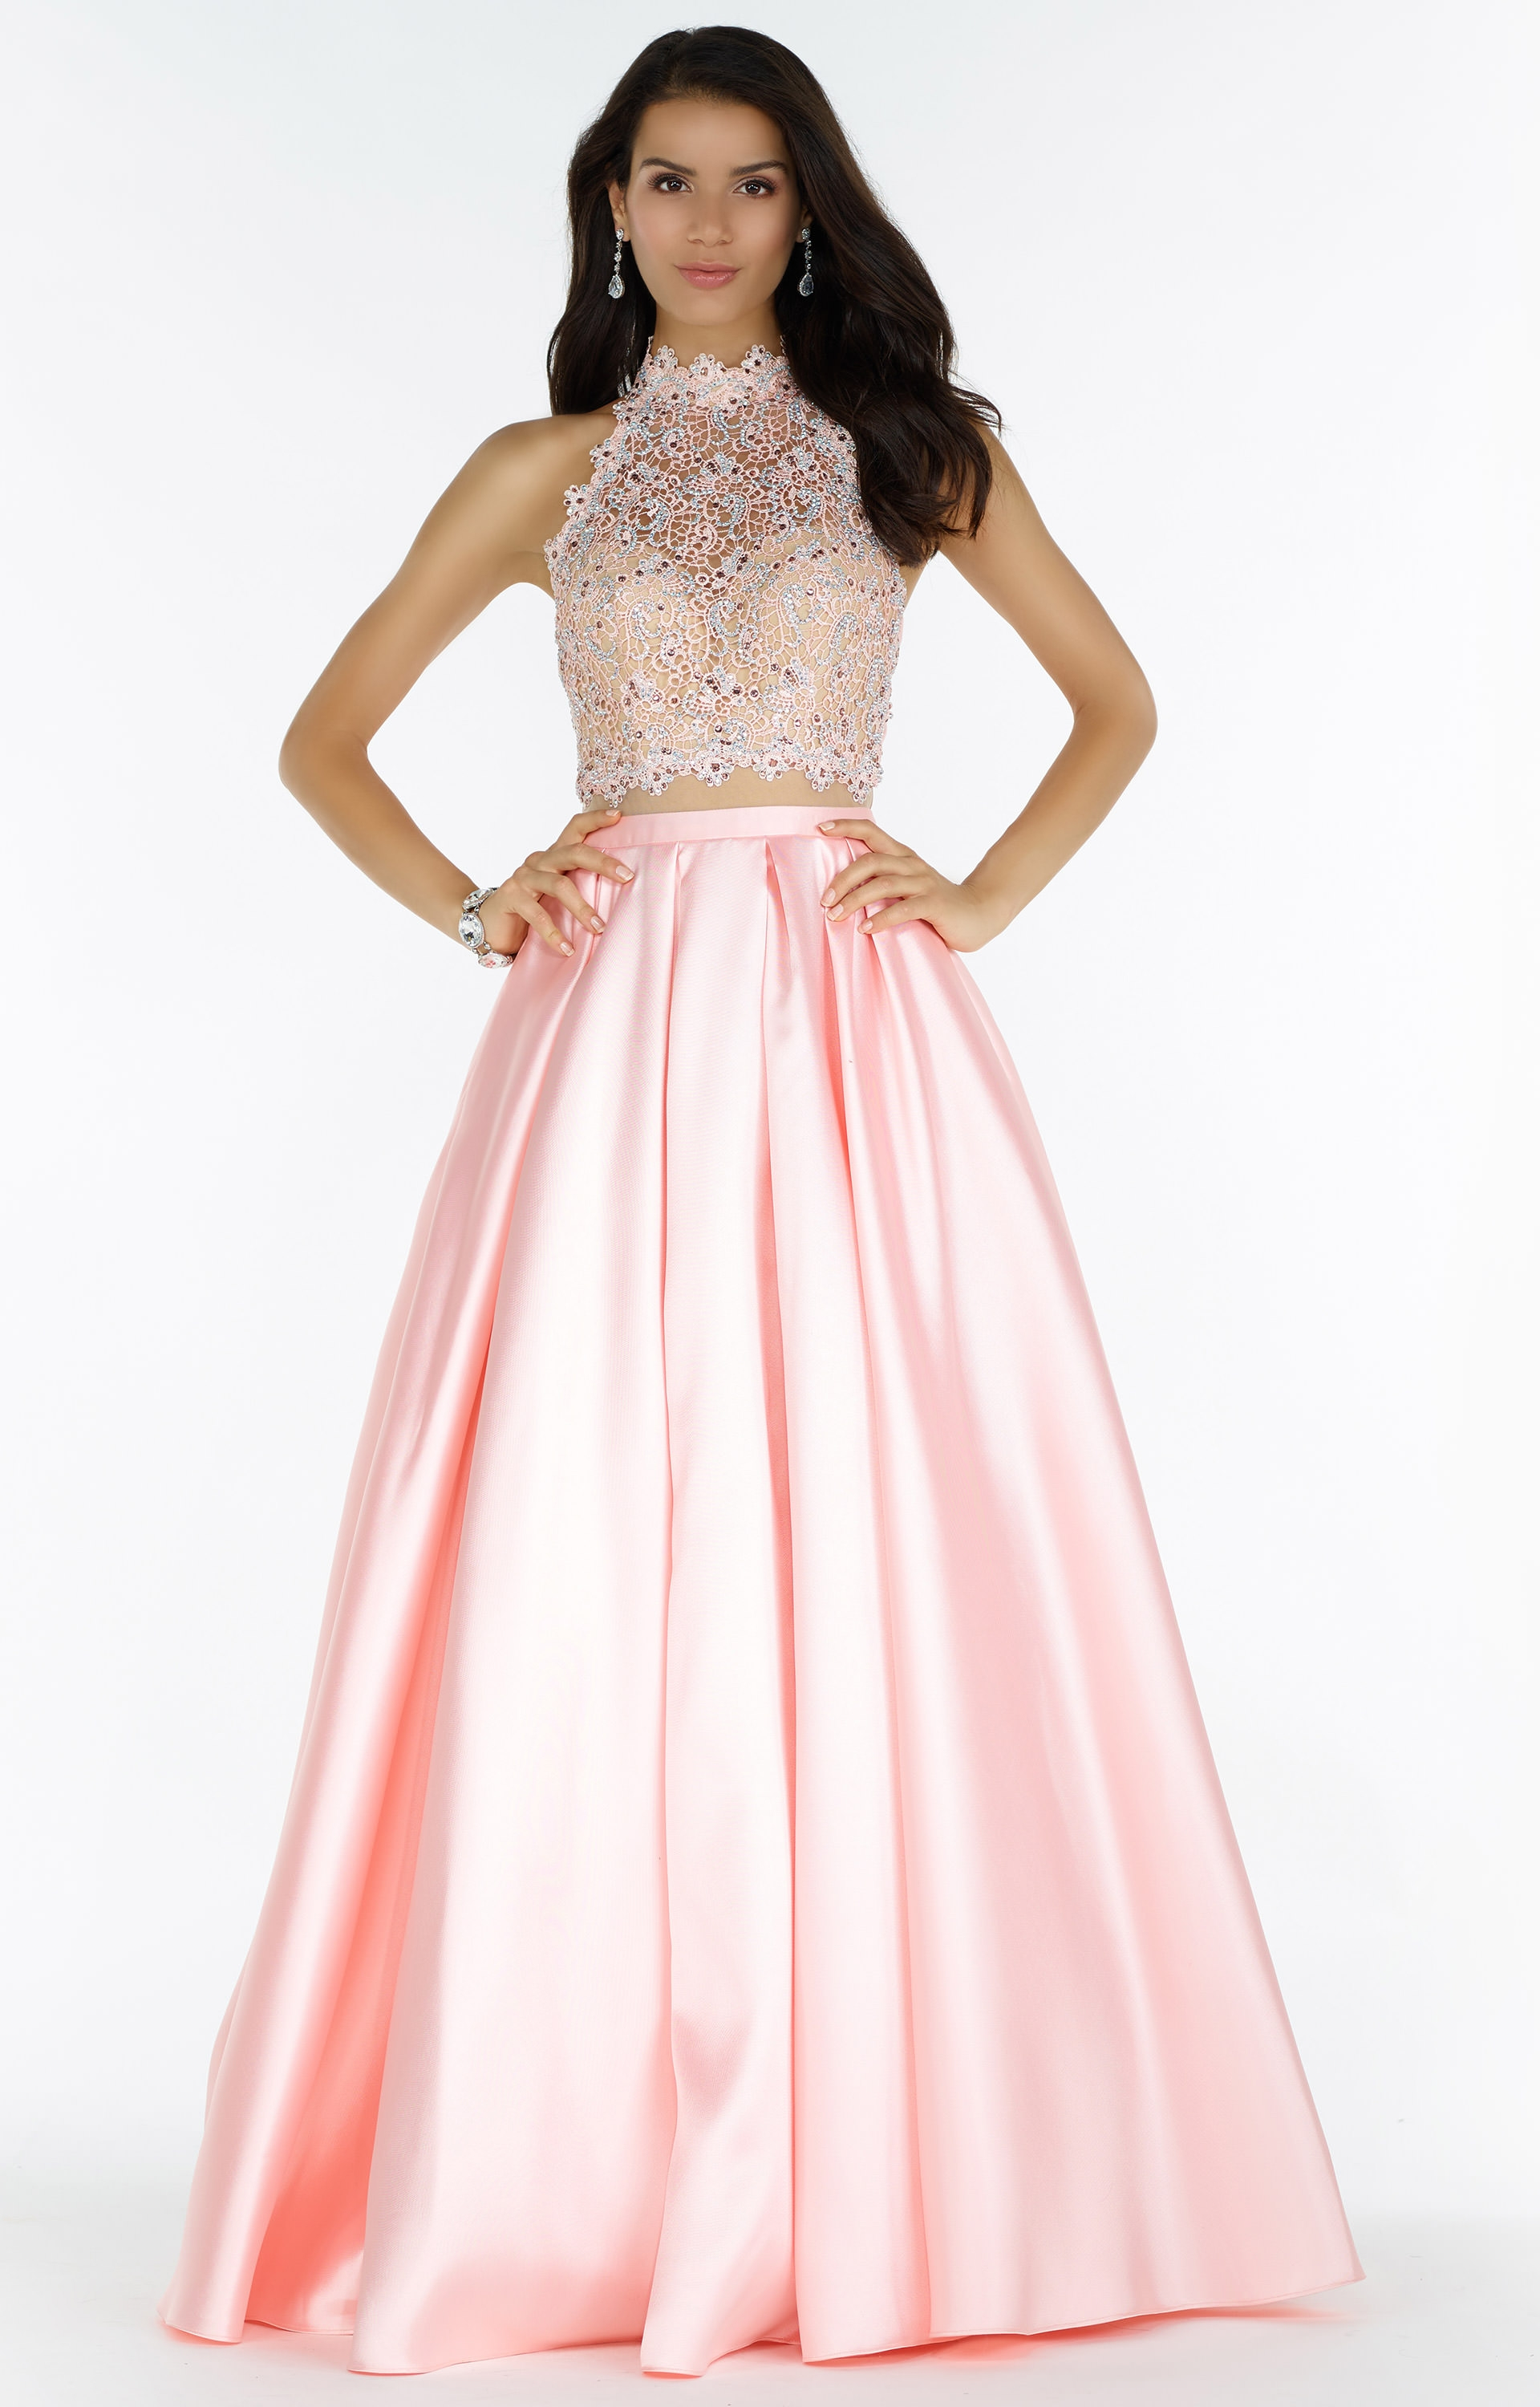 720a18620e3 Alyce Paris 6738 - Two-Piece Sleeveless Mikado Ballgown with Lace ...